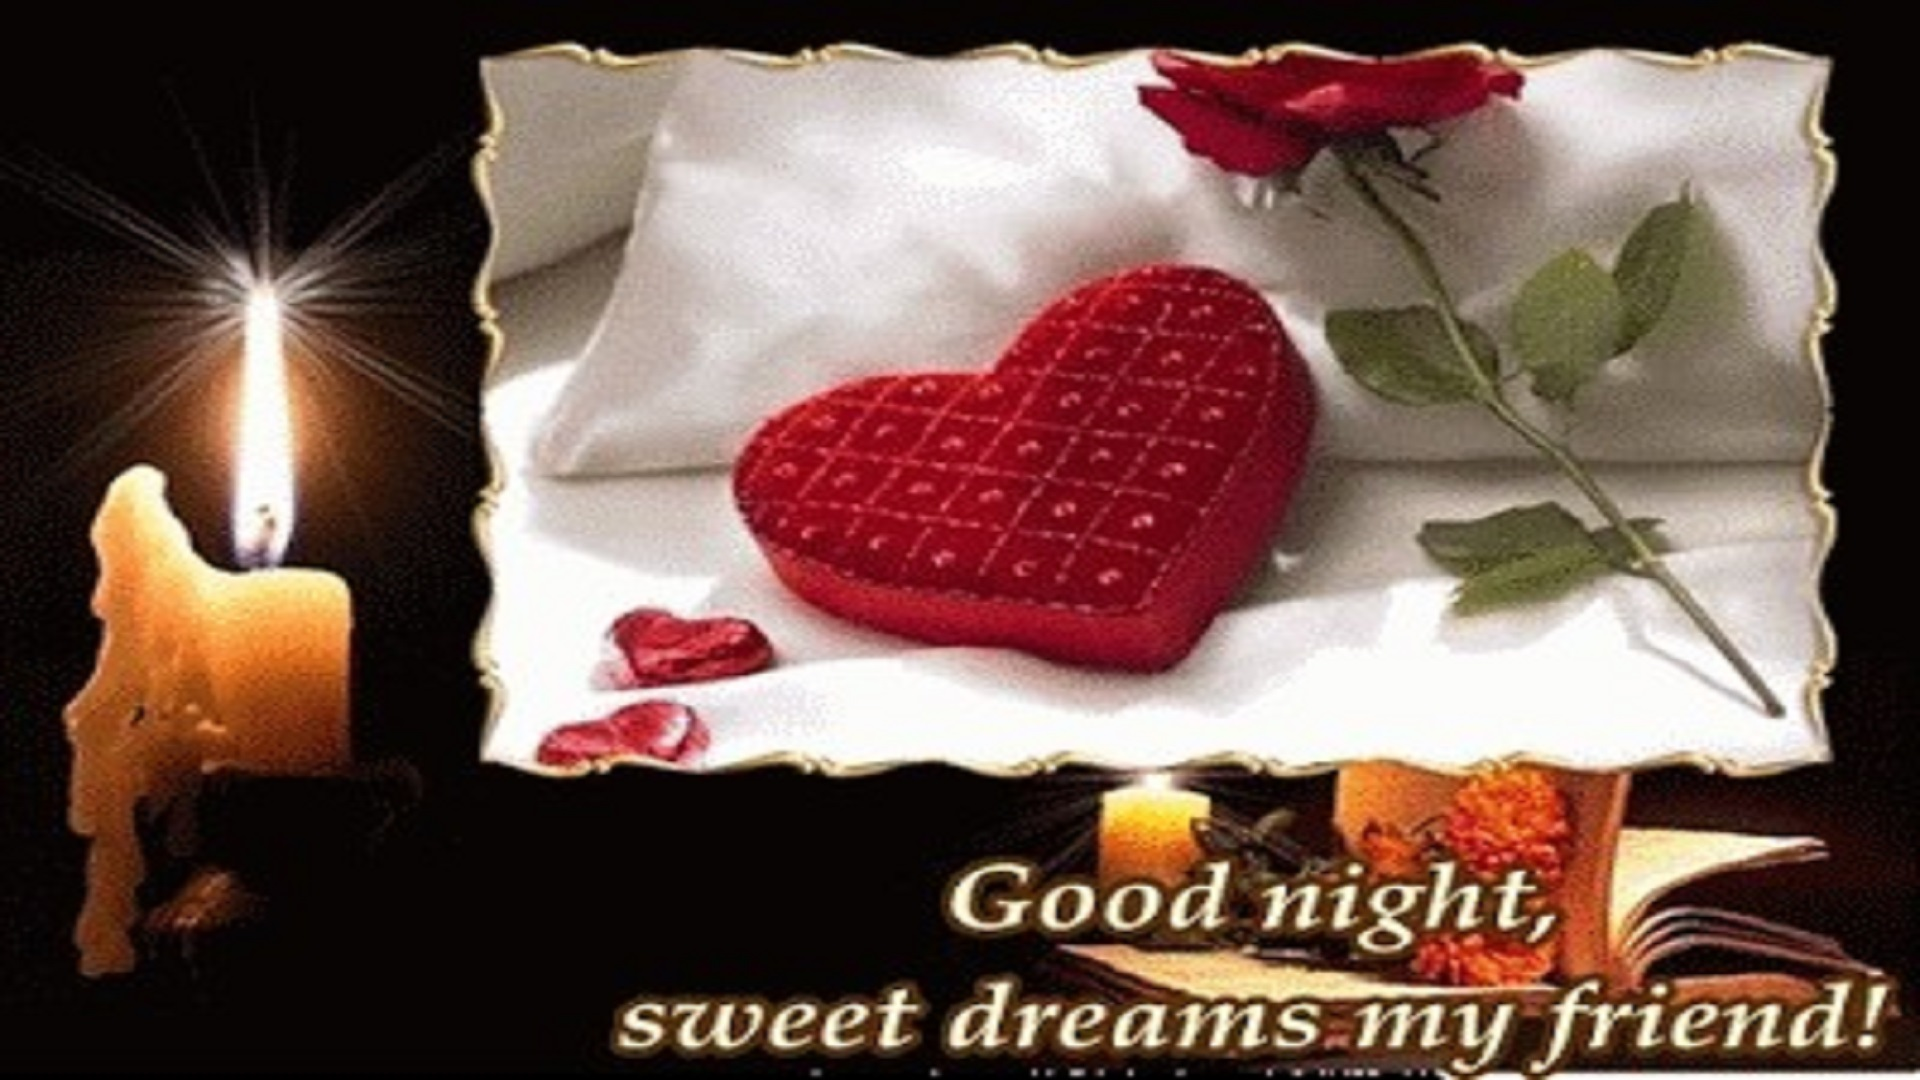 Good Night Sweet Dreams Wall Nice Hd Wallpapers Free Hd Wallpaper